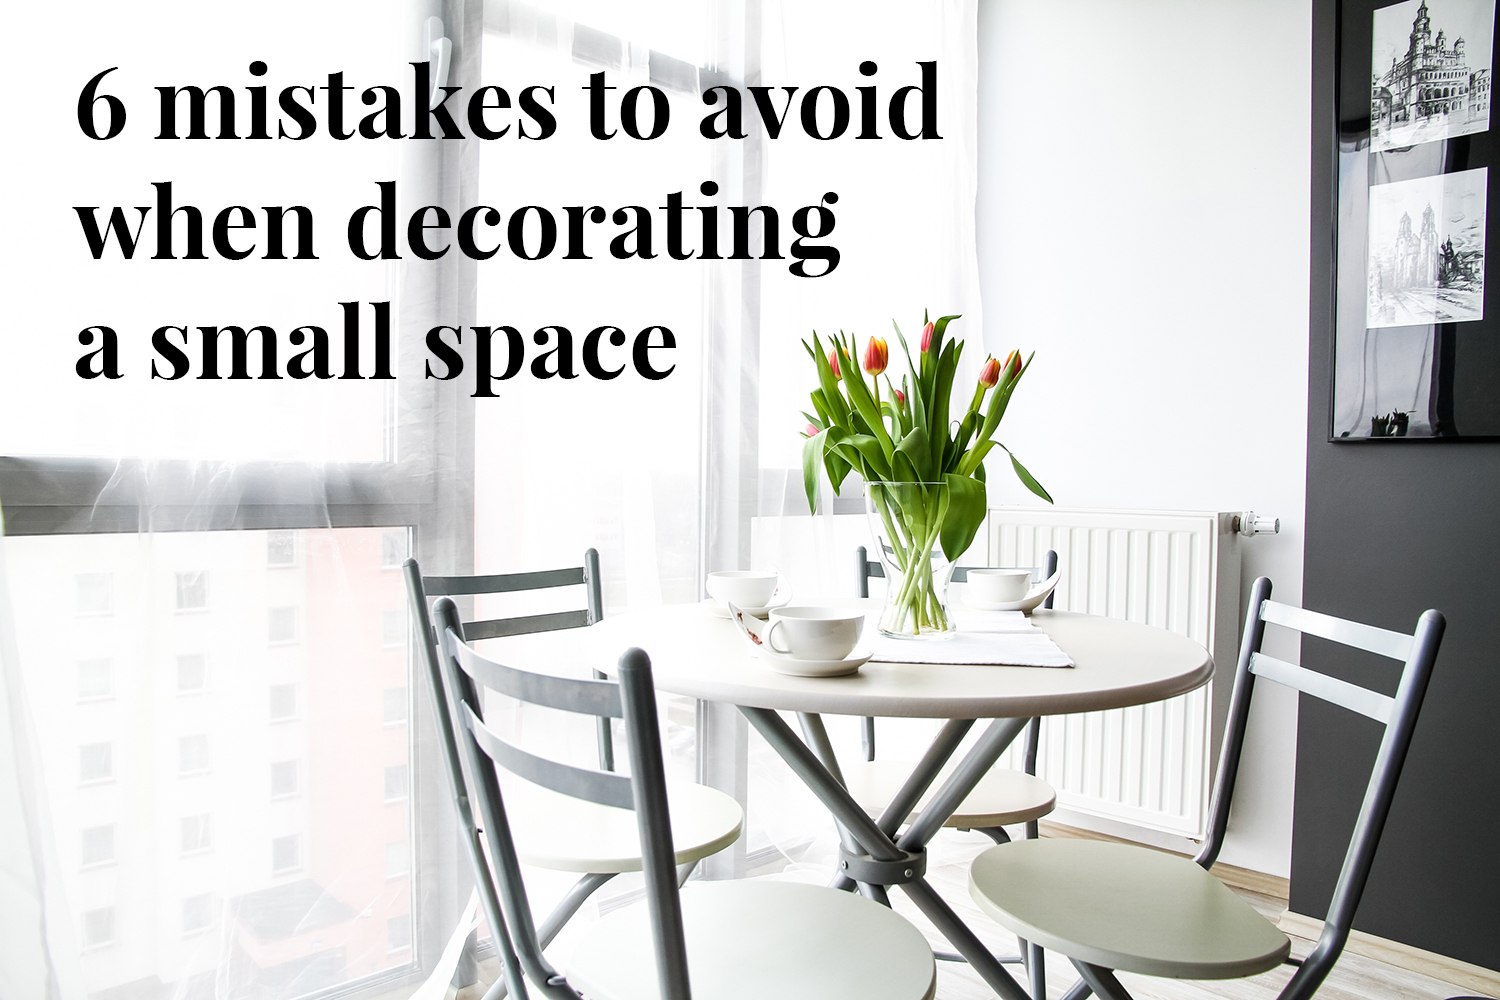 Therere Several Mistakes That New Settlers Make When Theyre Establishing Small Spaces You Should Read Below How To Avoid These